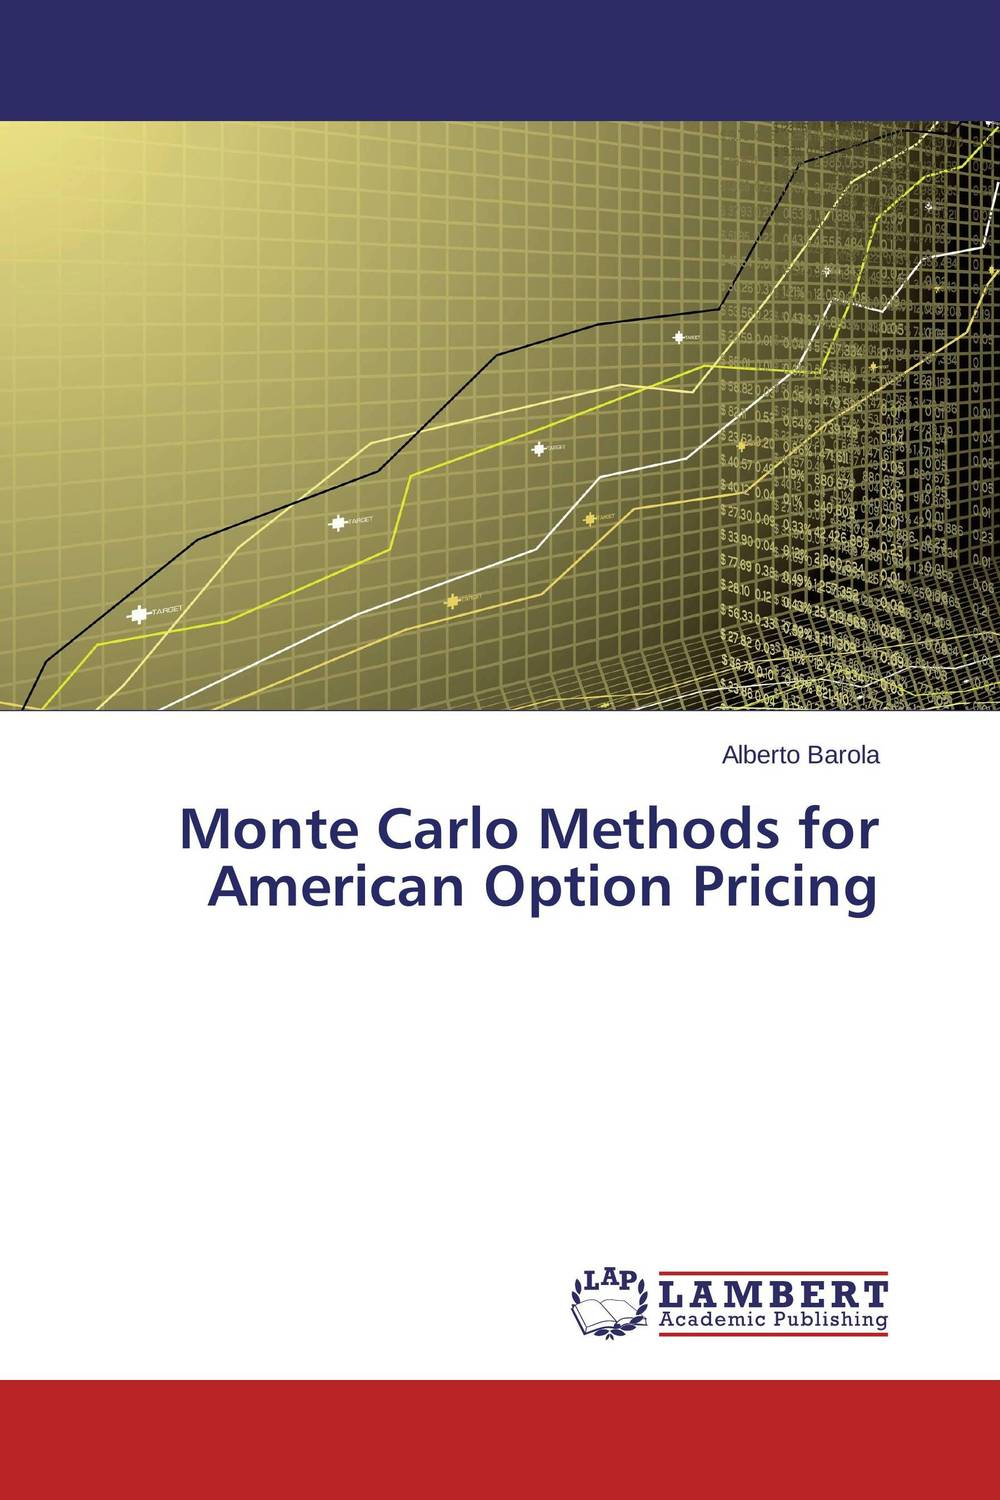 Monte Carlo Methods for American Option Pricing the application of wavelets methods in stefan problem